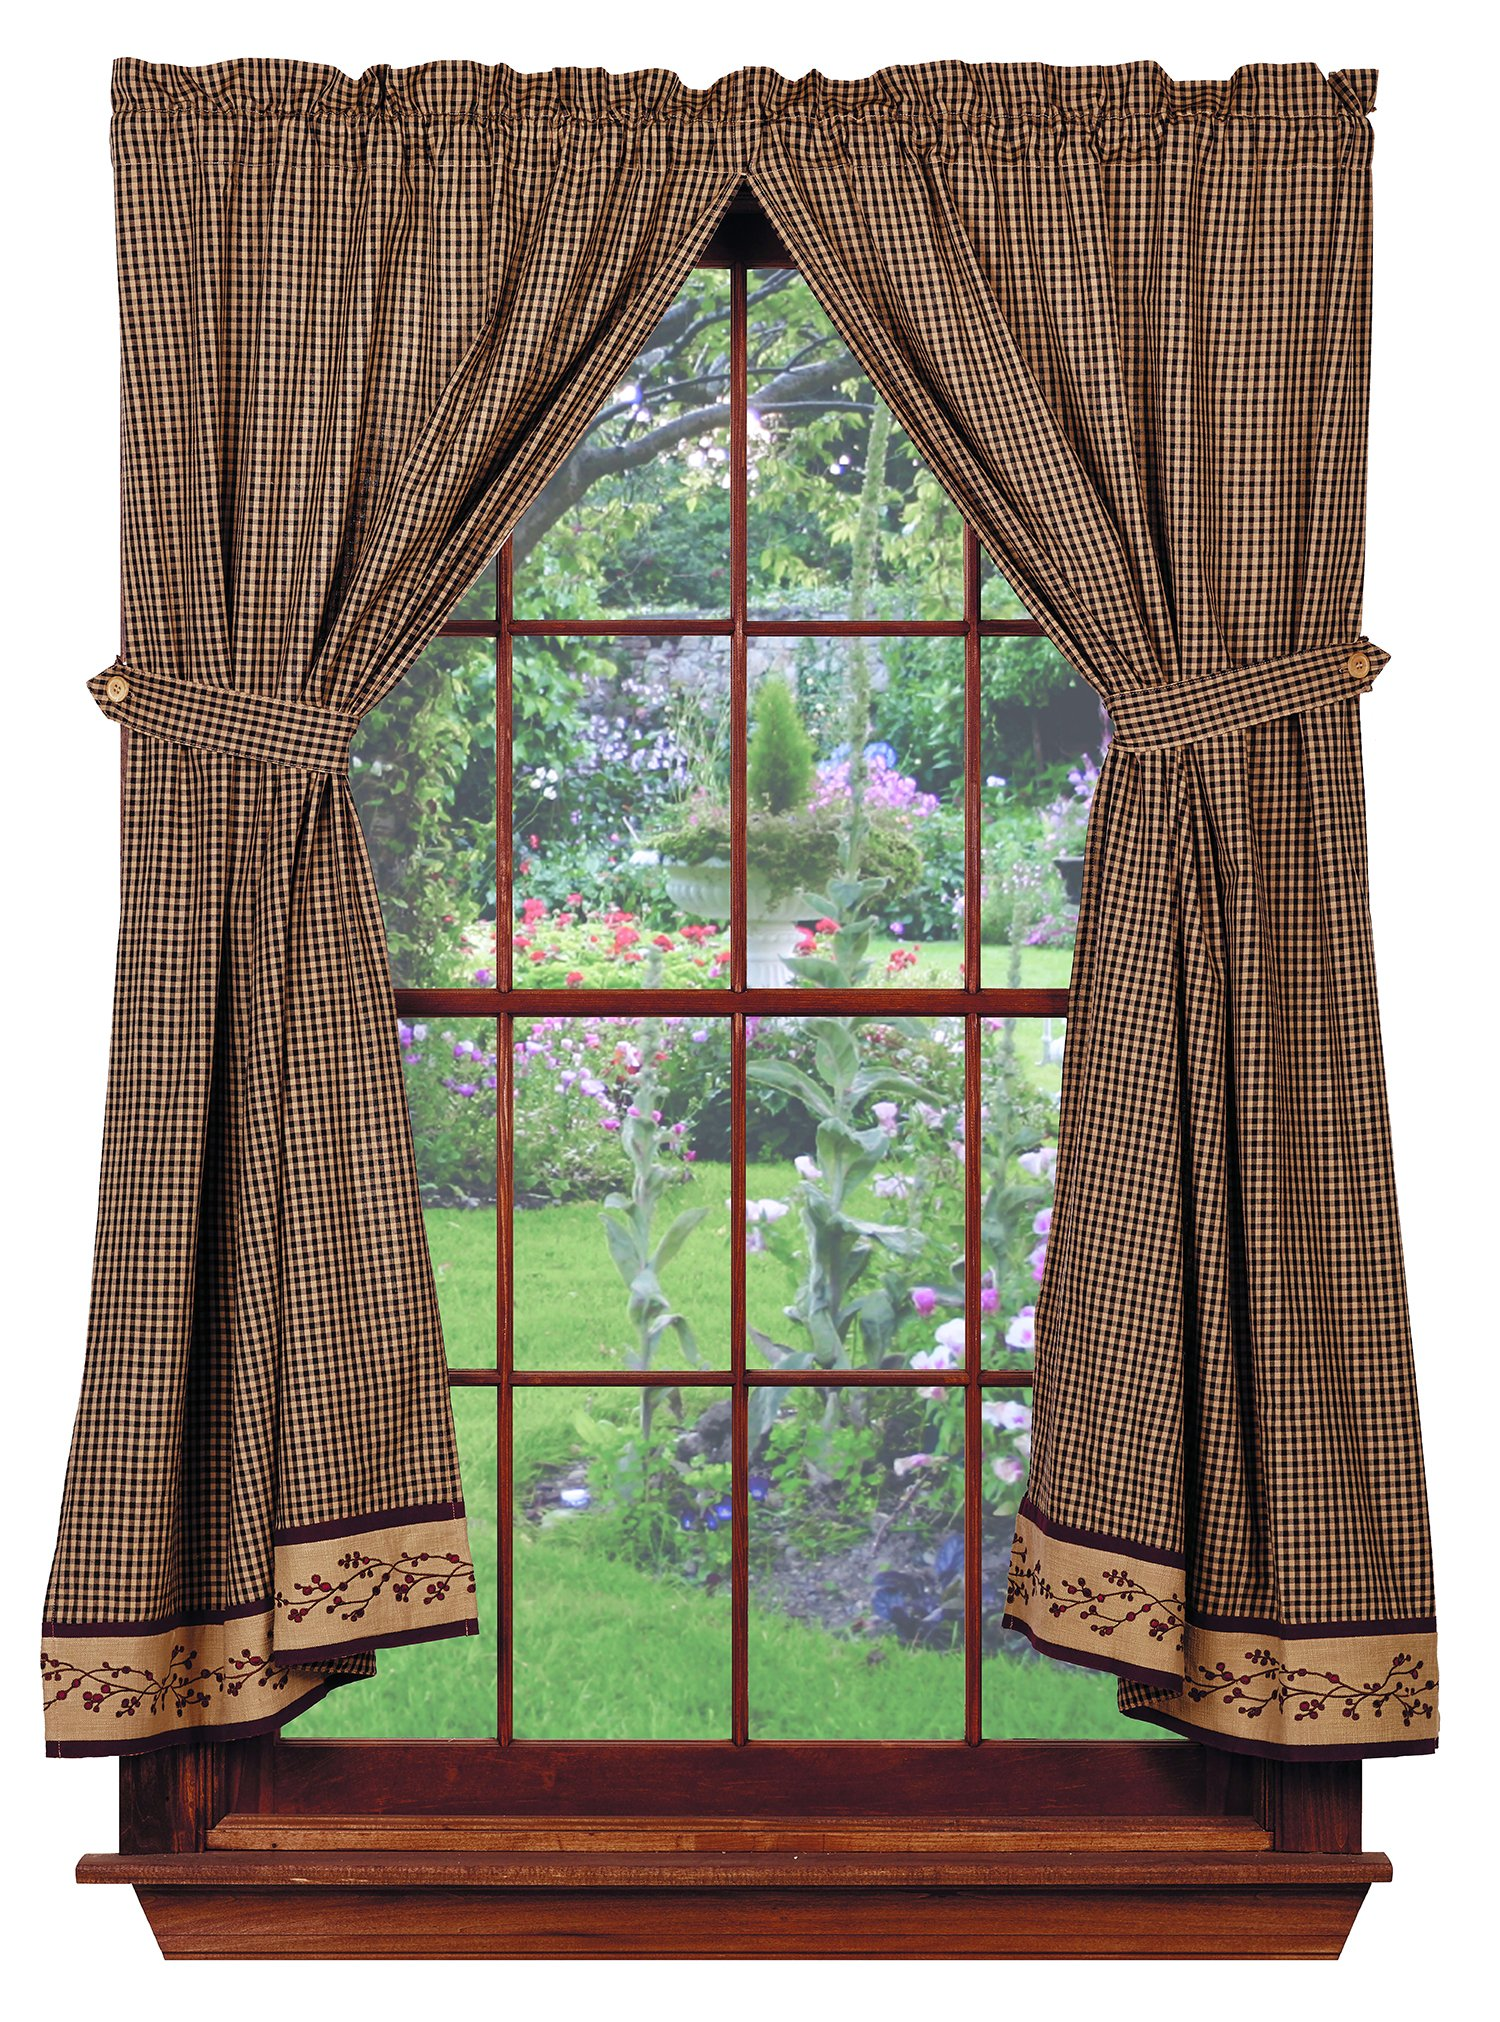 Berry Vine Panels, 72''x63'', Black Check, Country Primitive Drape Curtains